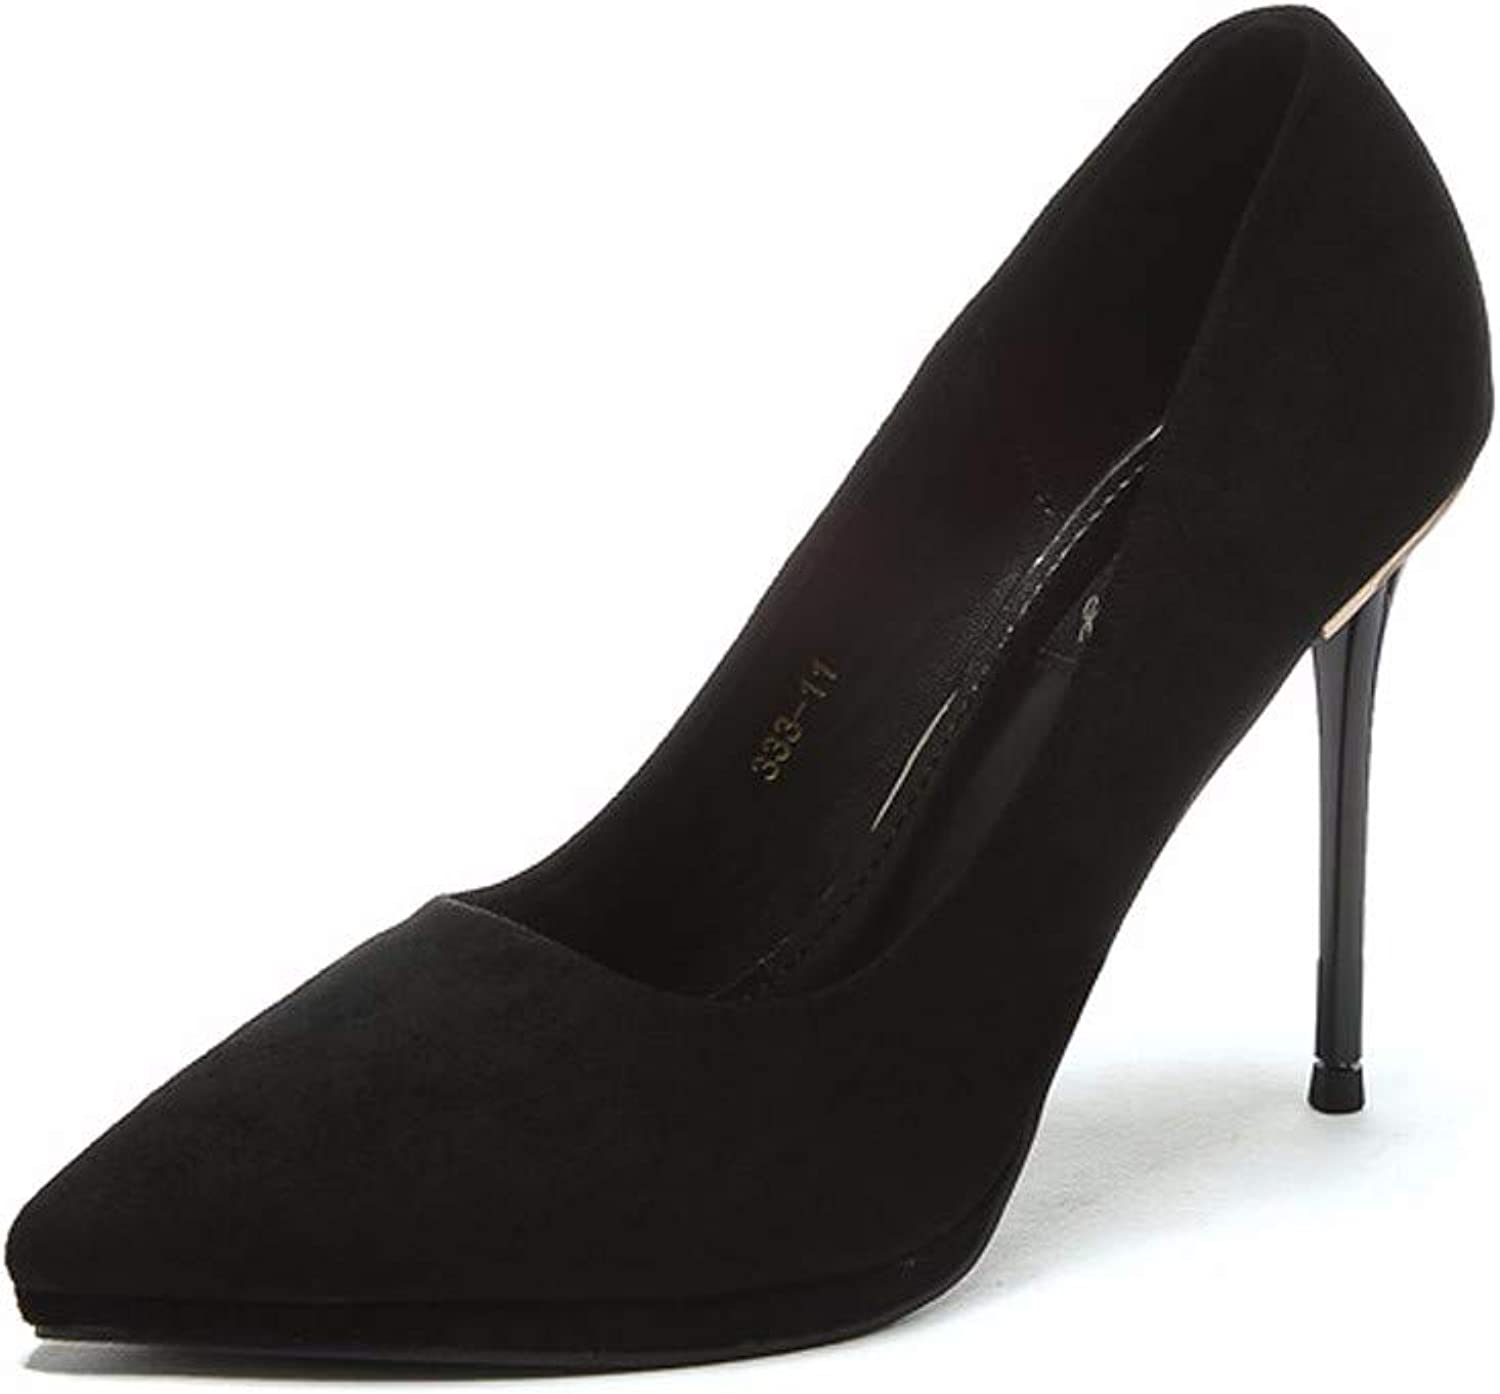 SFSYDDY Popular shoes Super High Heel with High 11Cm Thin and Wild Sexy Black Rear Drill Pointed shoes.